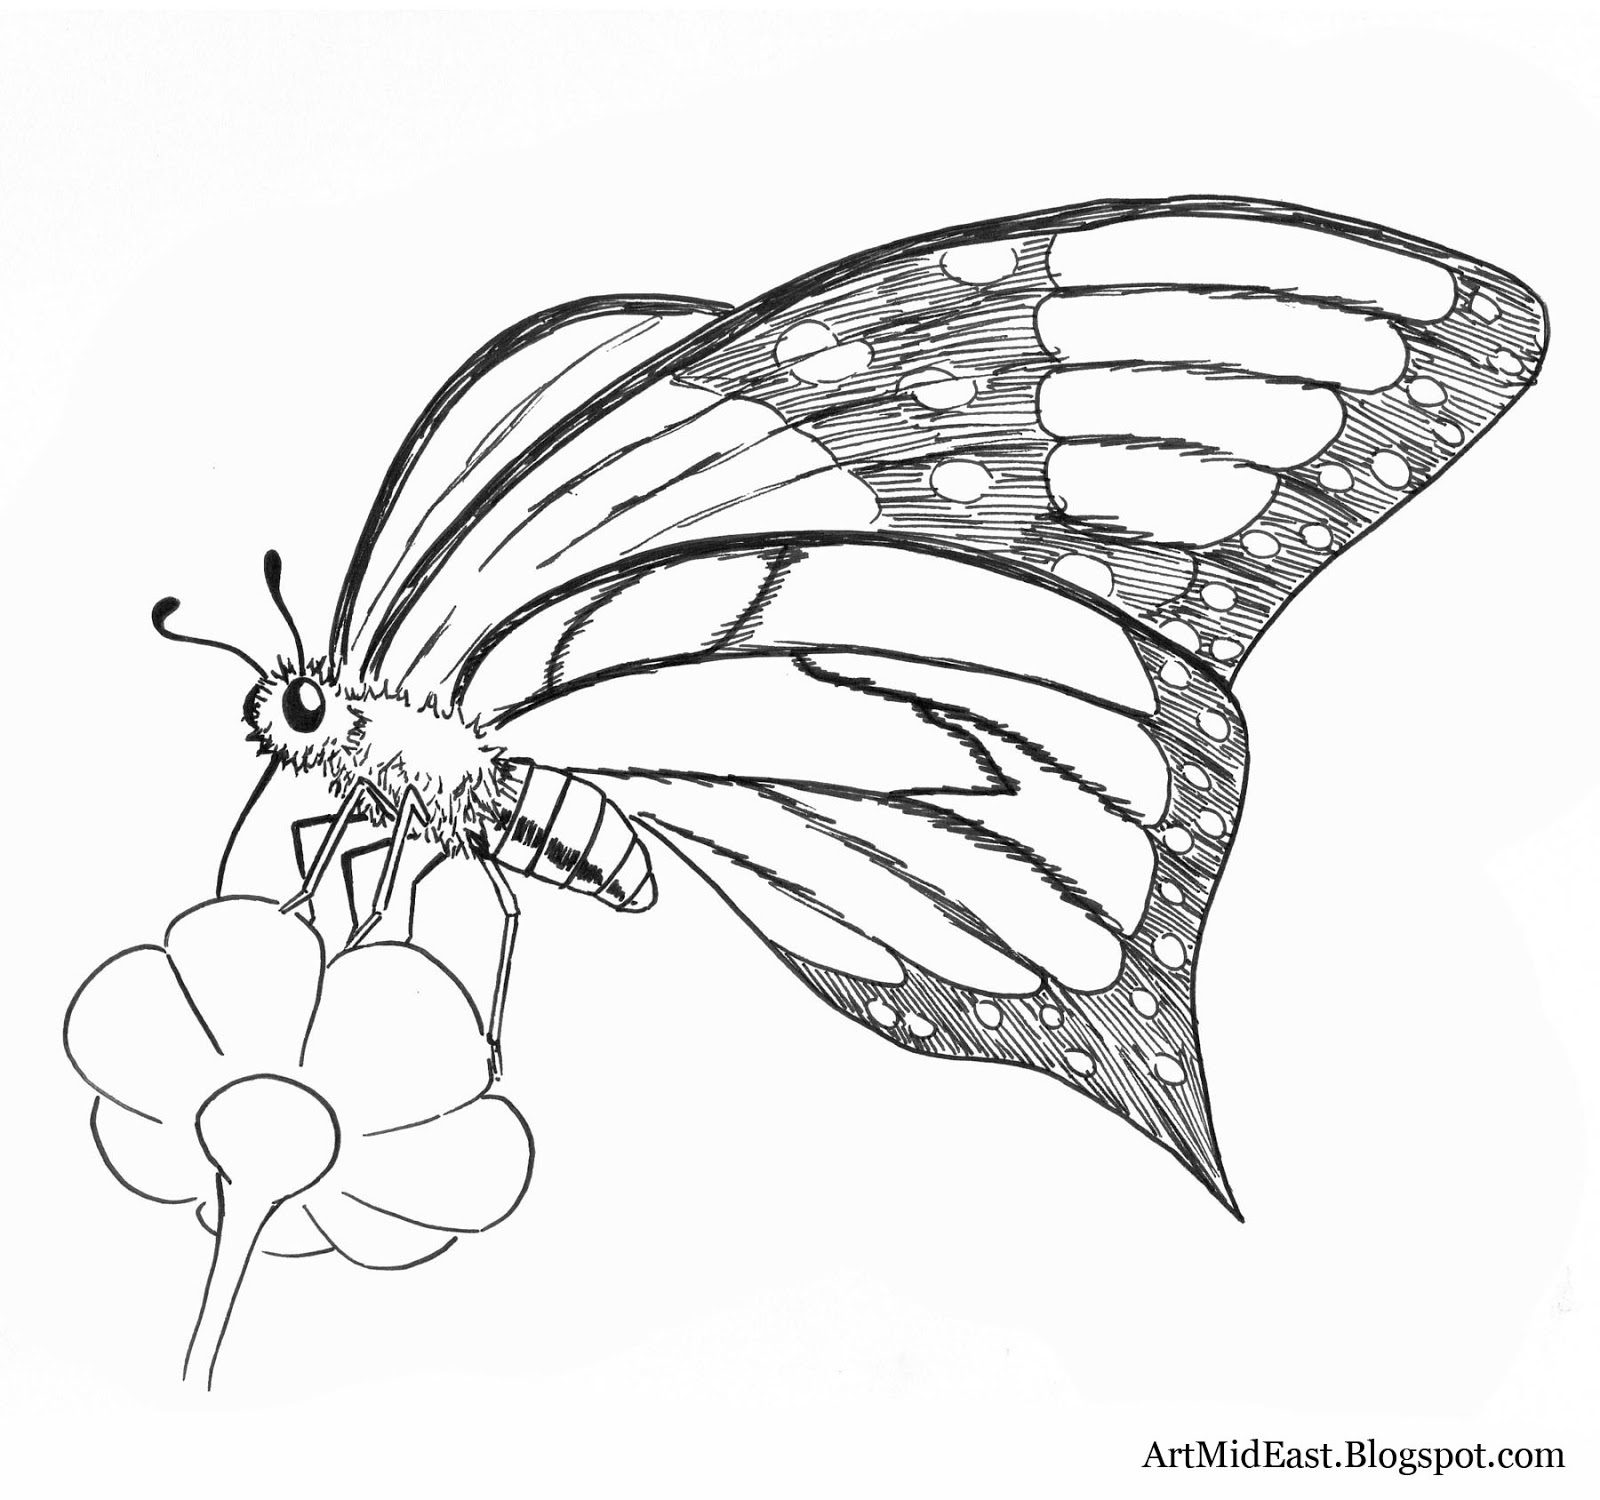 Drawn butterfly side view Simple Side Simple photo#20 butterfly